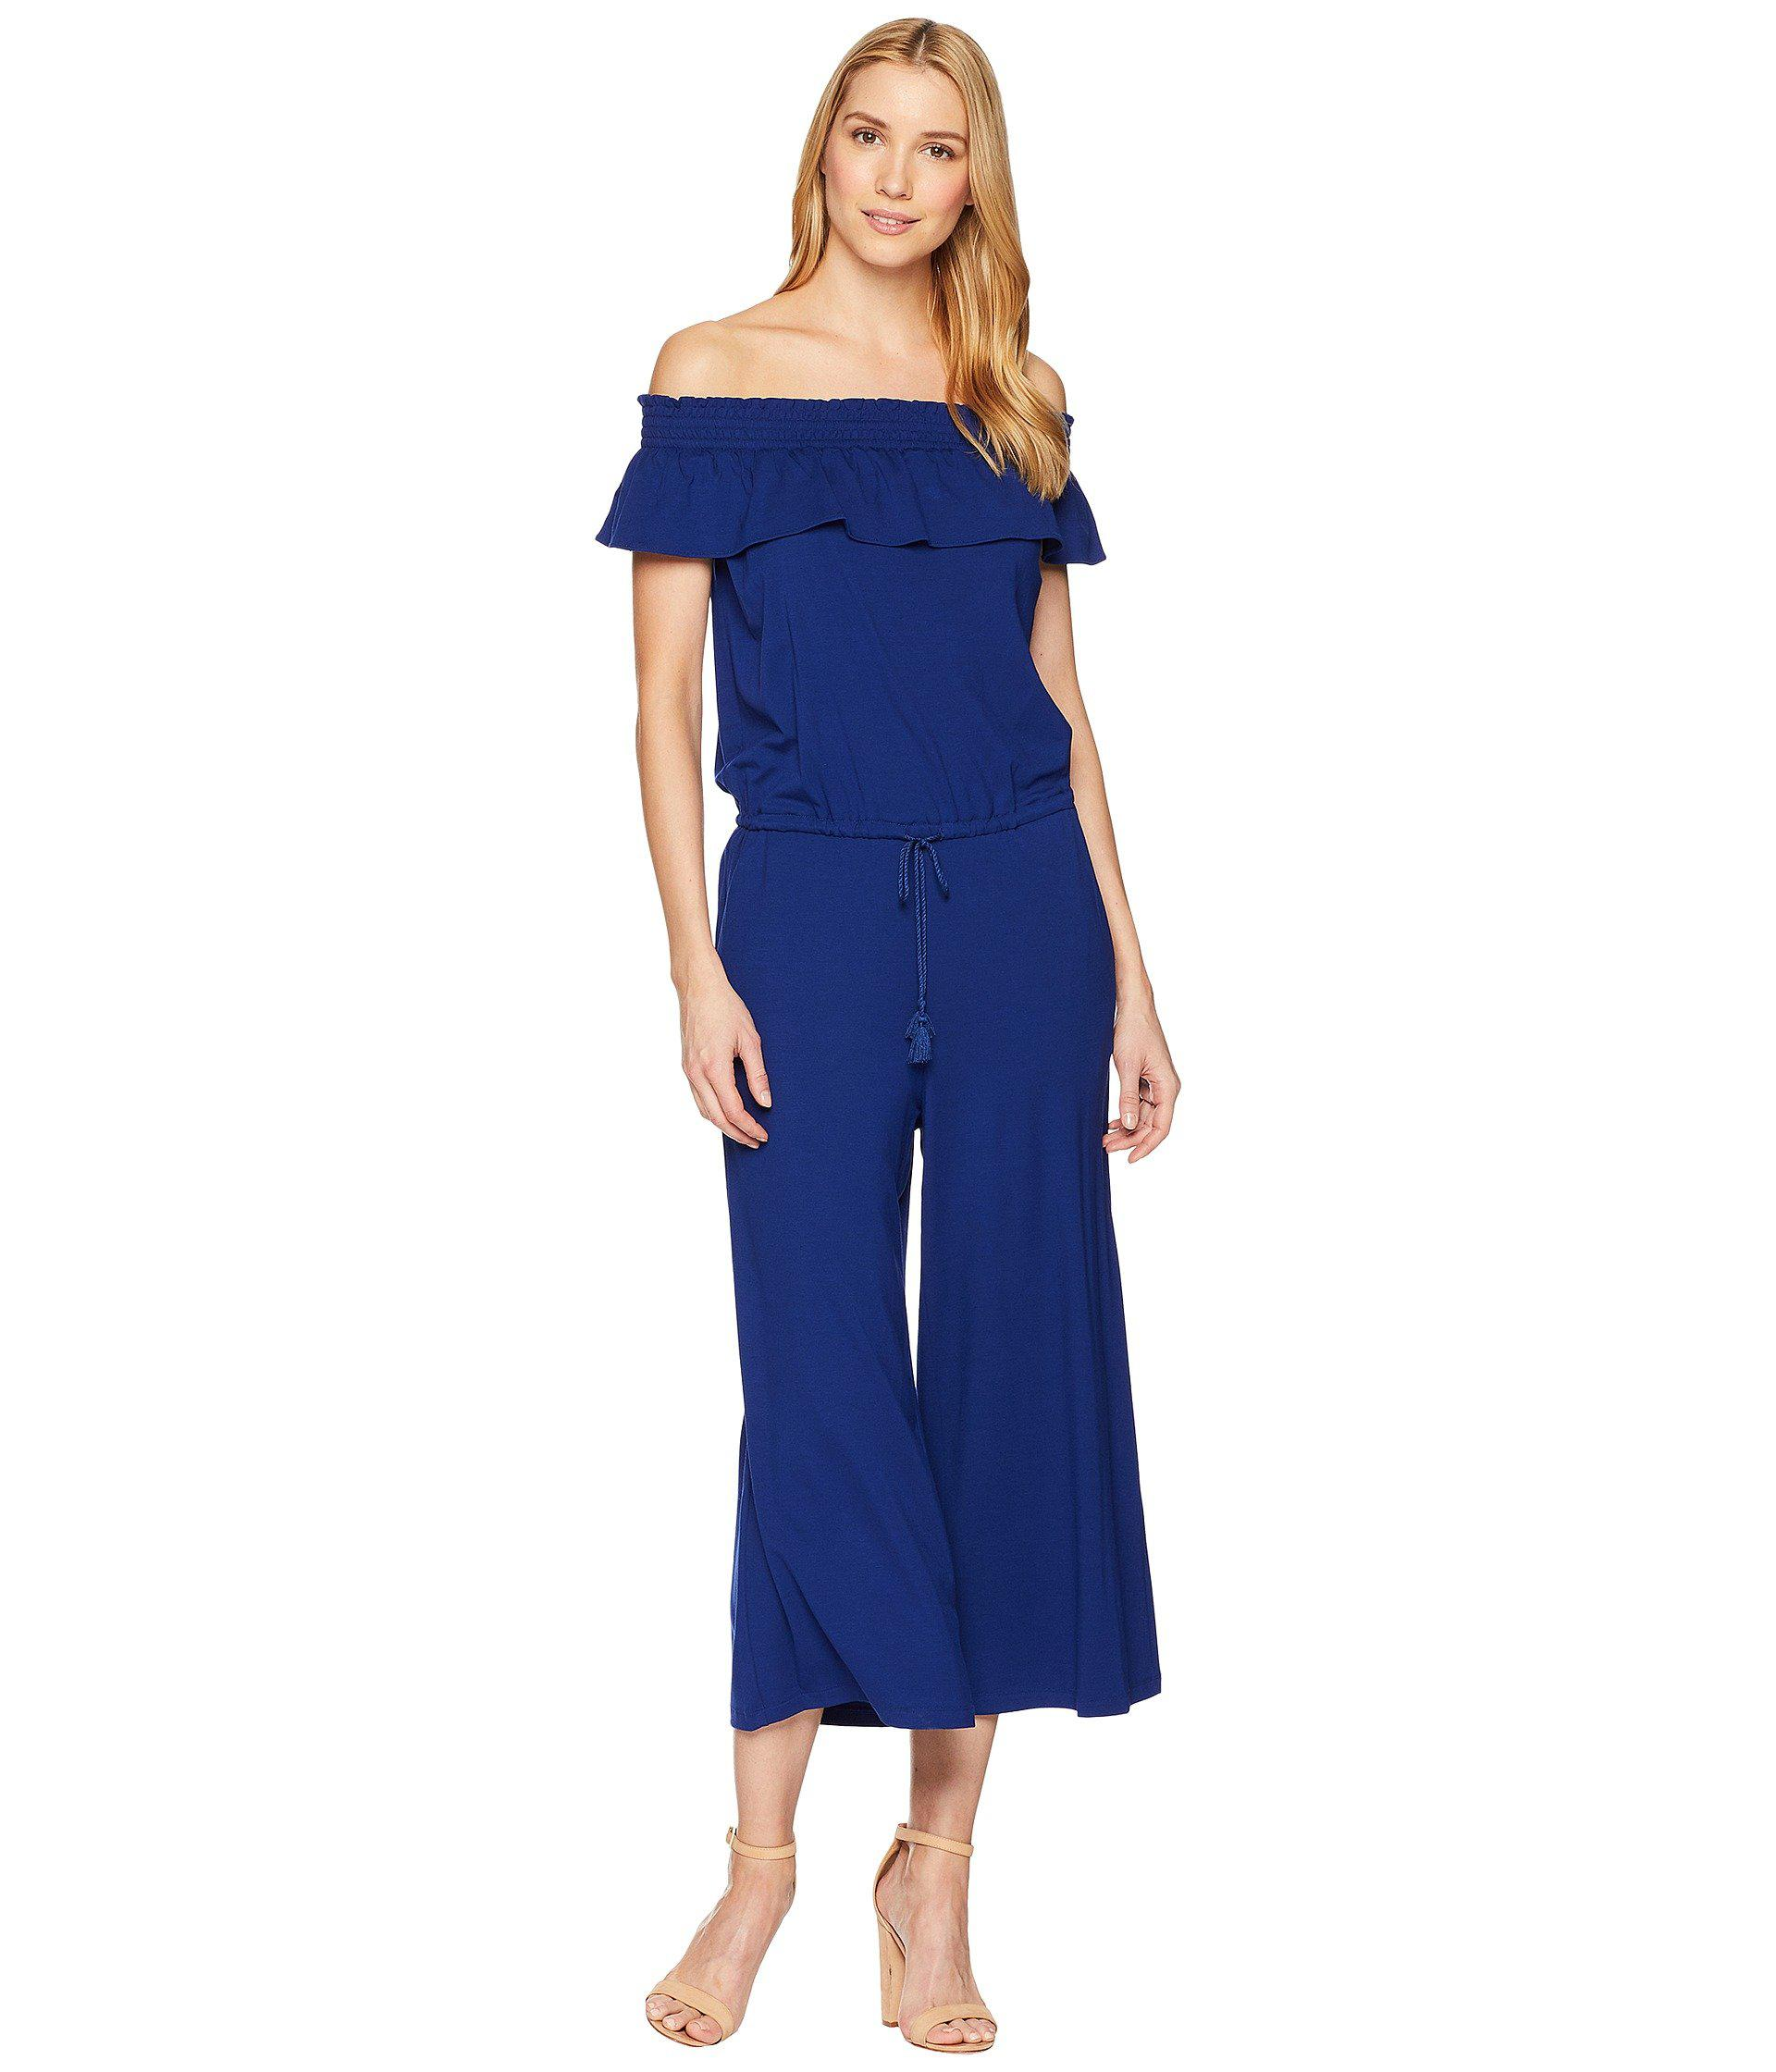 dffc8f2ae510 Lyst - Lauren by Ralph Lauren Off The Shoulder Wide-leg Jumpsuit in ...